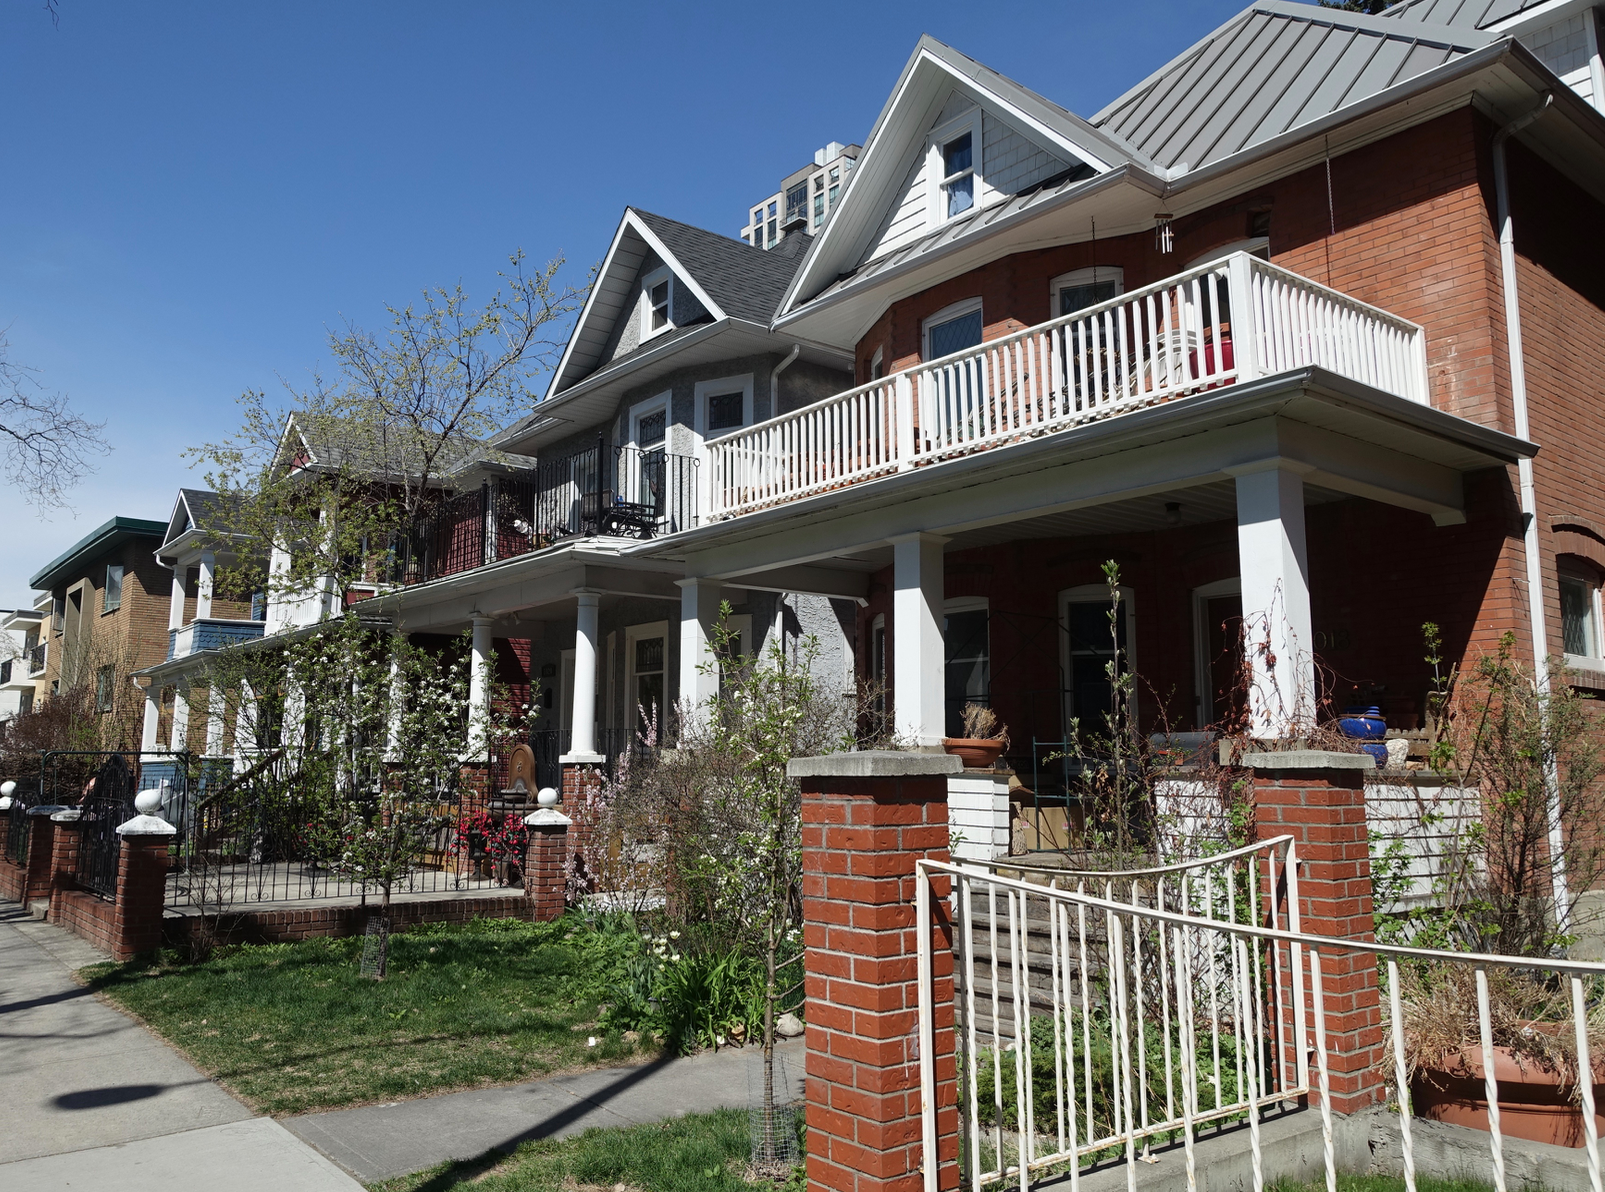 It is hard to believe that this streetscape is in the Beltline, Calgary's densest residential community. It has a very suburban aesthetics with its front lawns and porches.